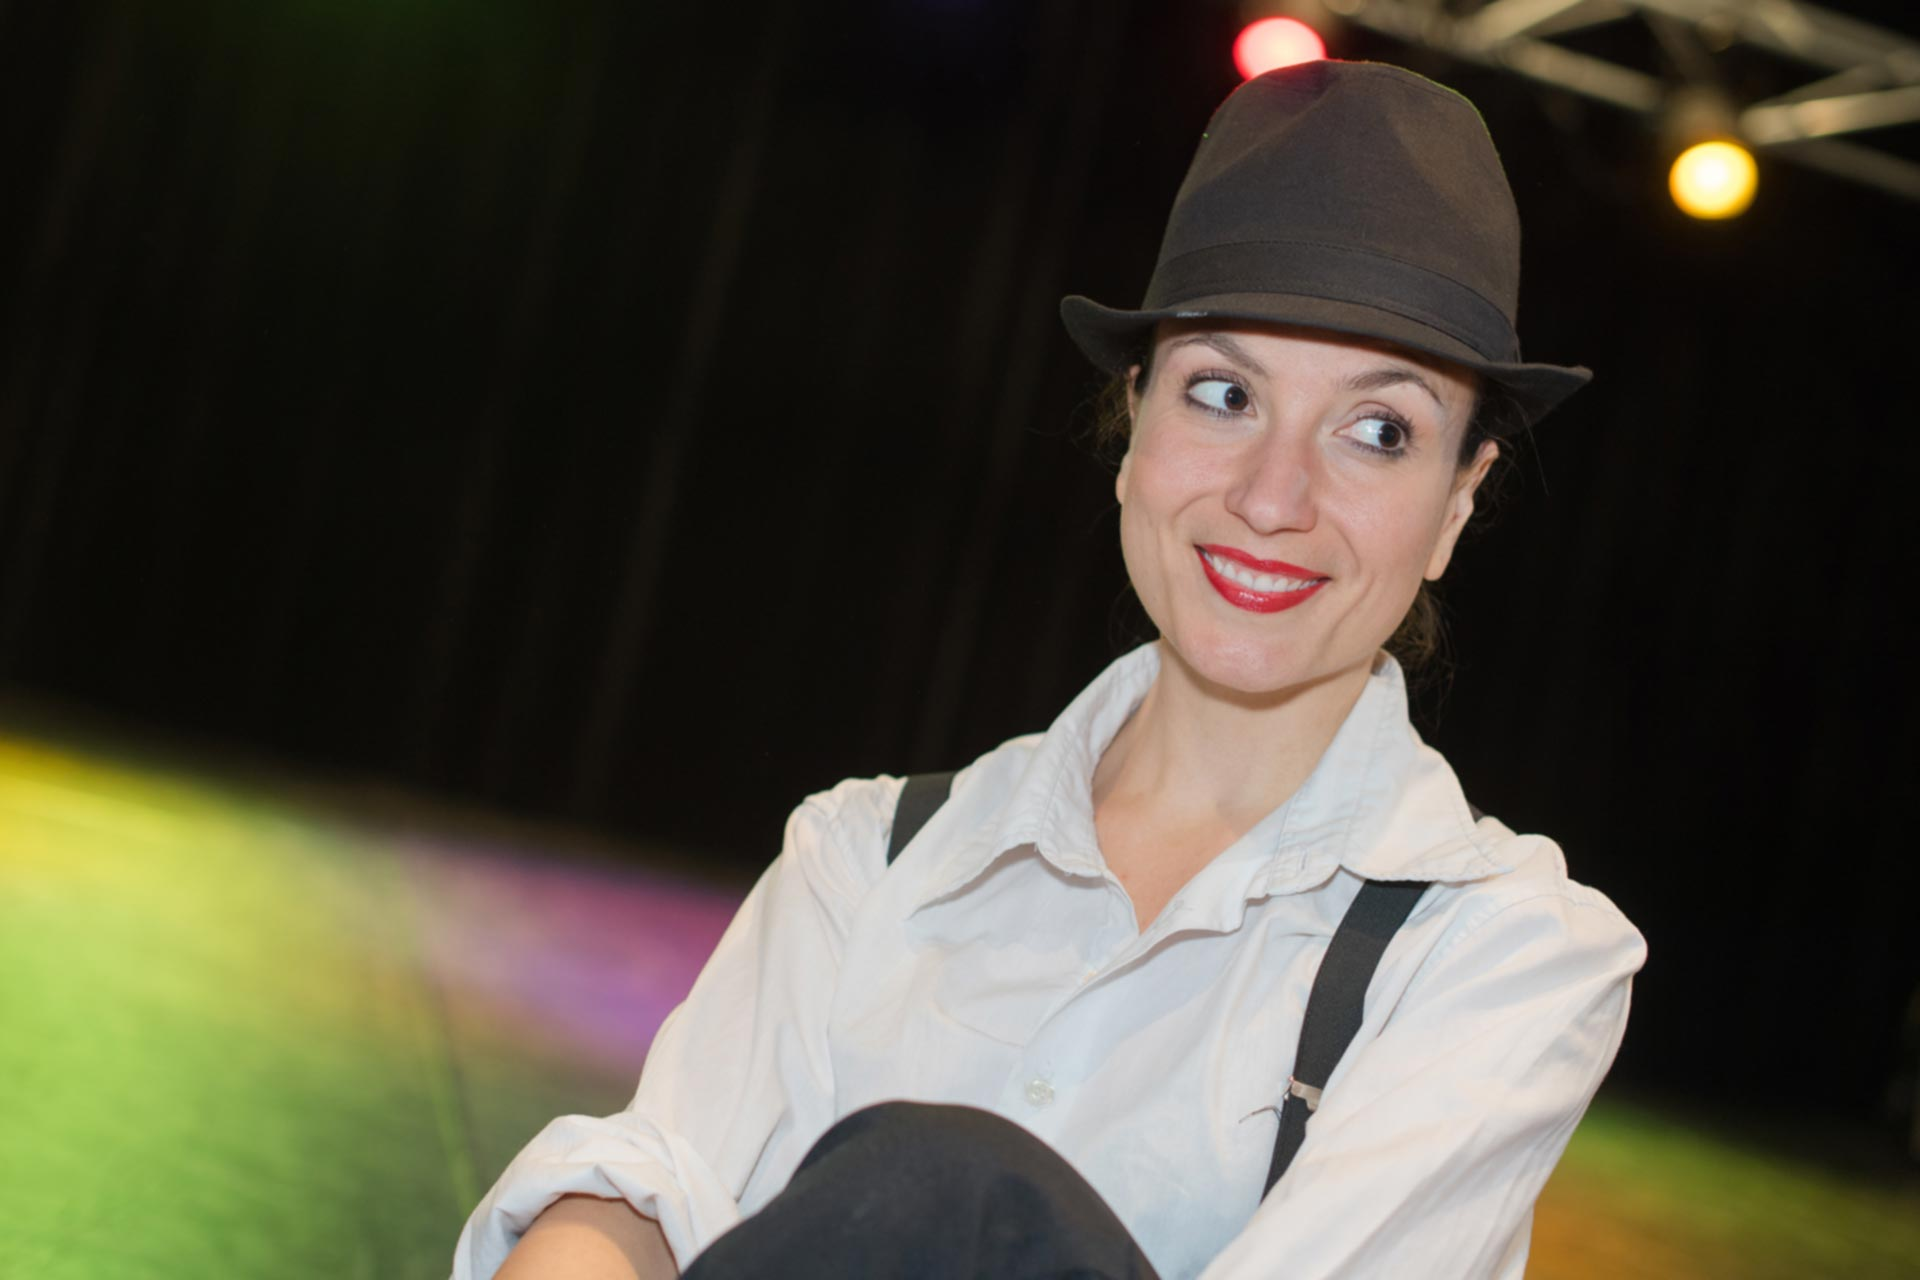 Nadia Themis - Performance Coaching, Lady on stage